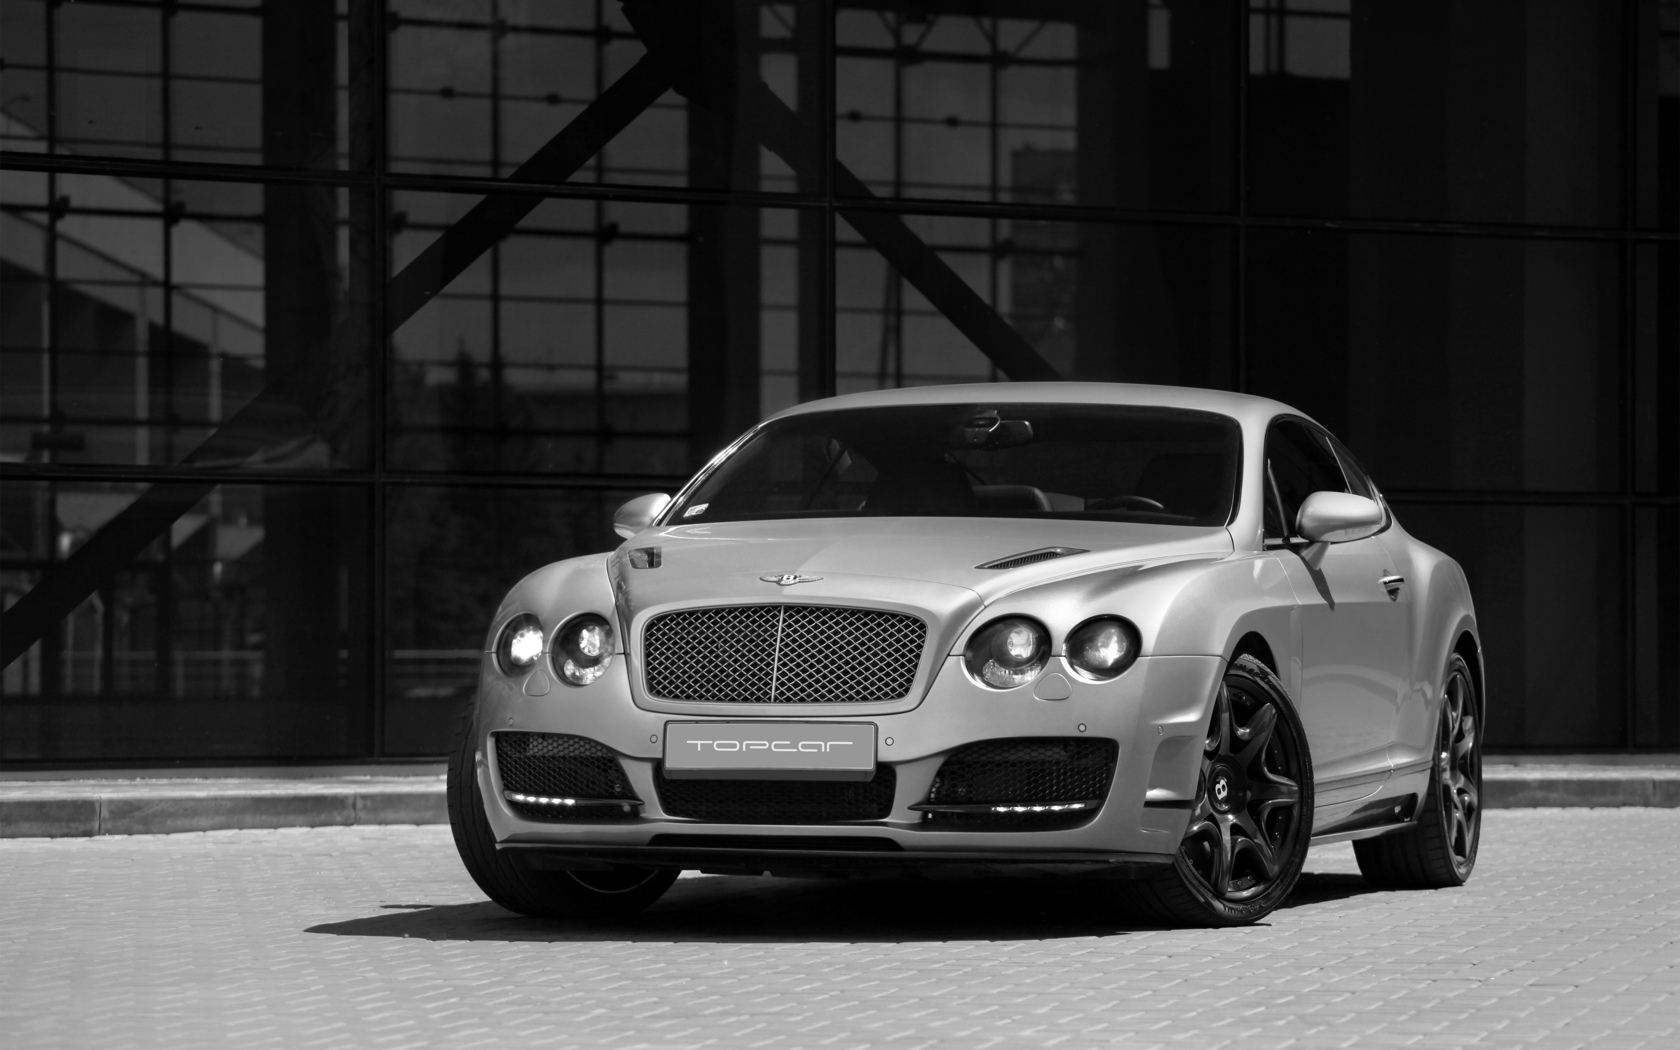 bentley continental gt bullet, машина, спорткар